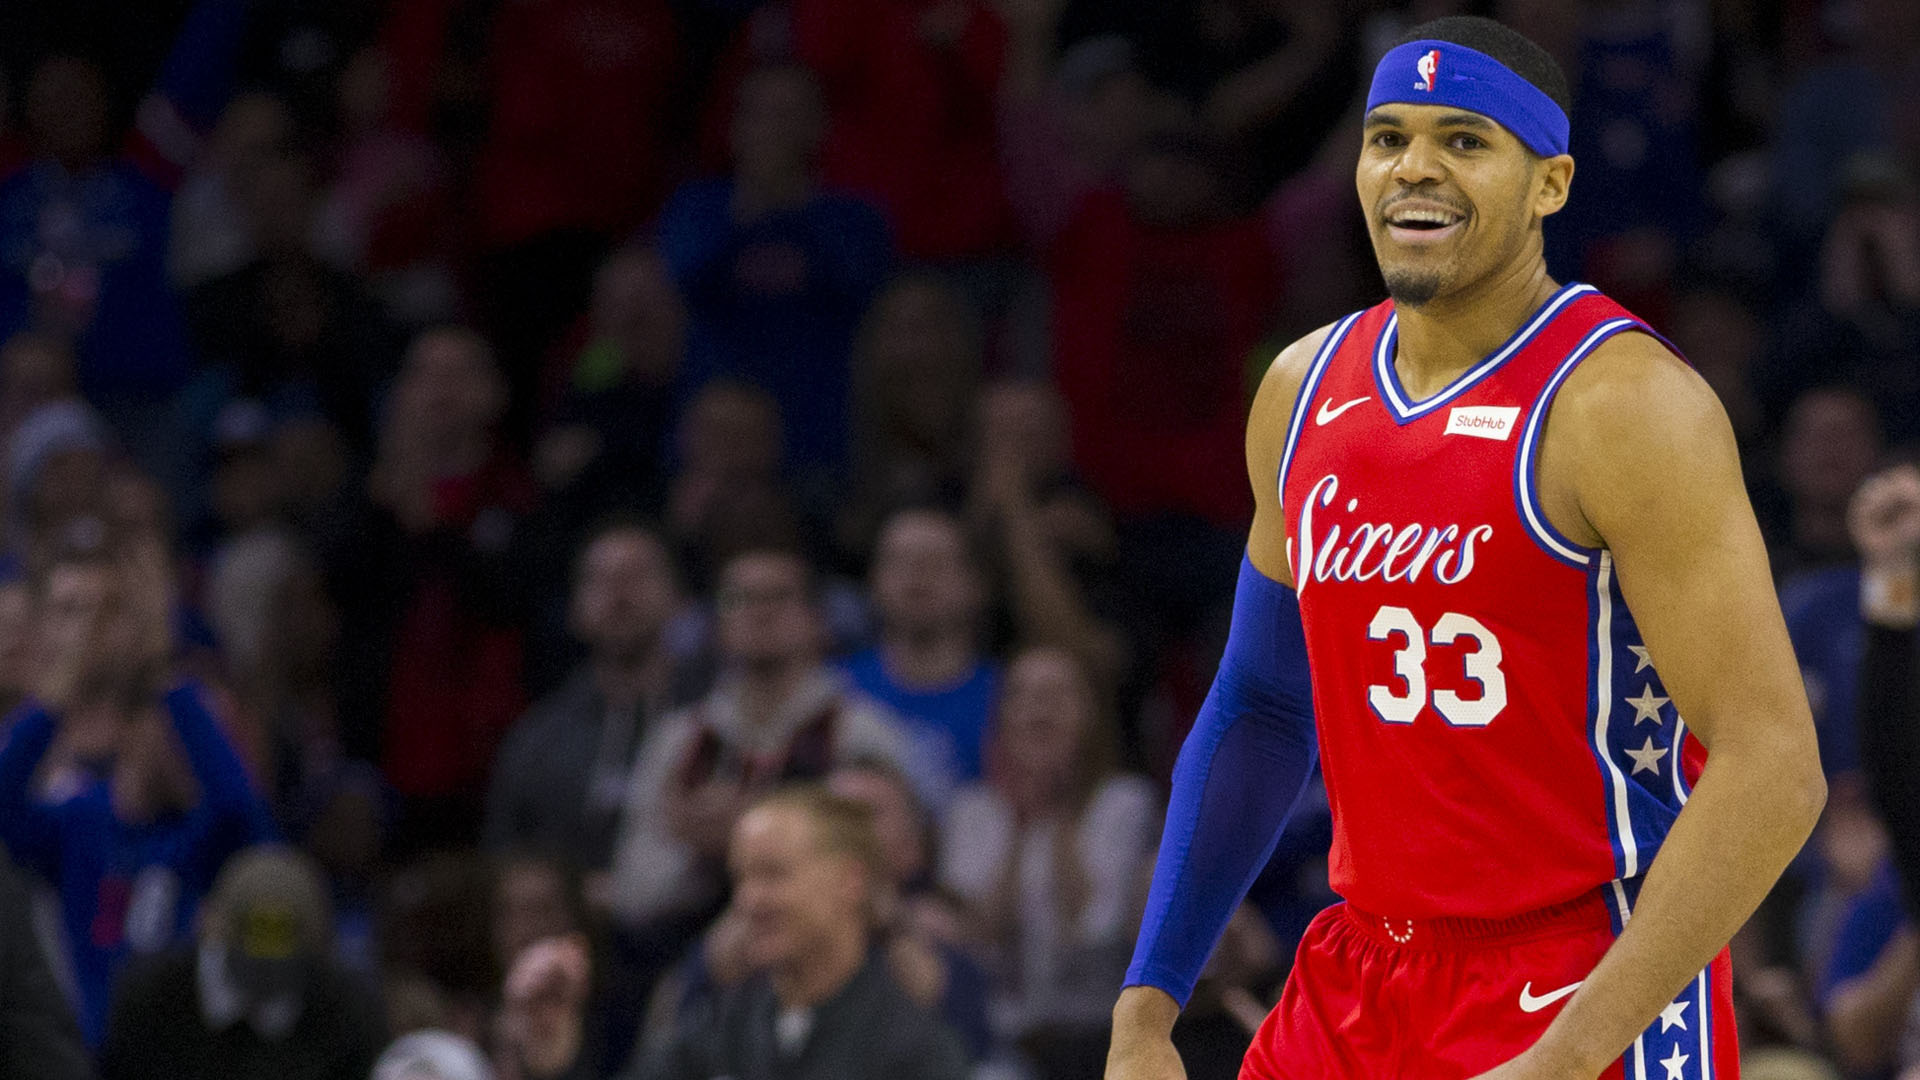 NBA free agency rumors: At least 5 teams expected to pursue Tobias Harris